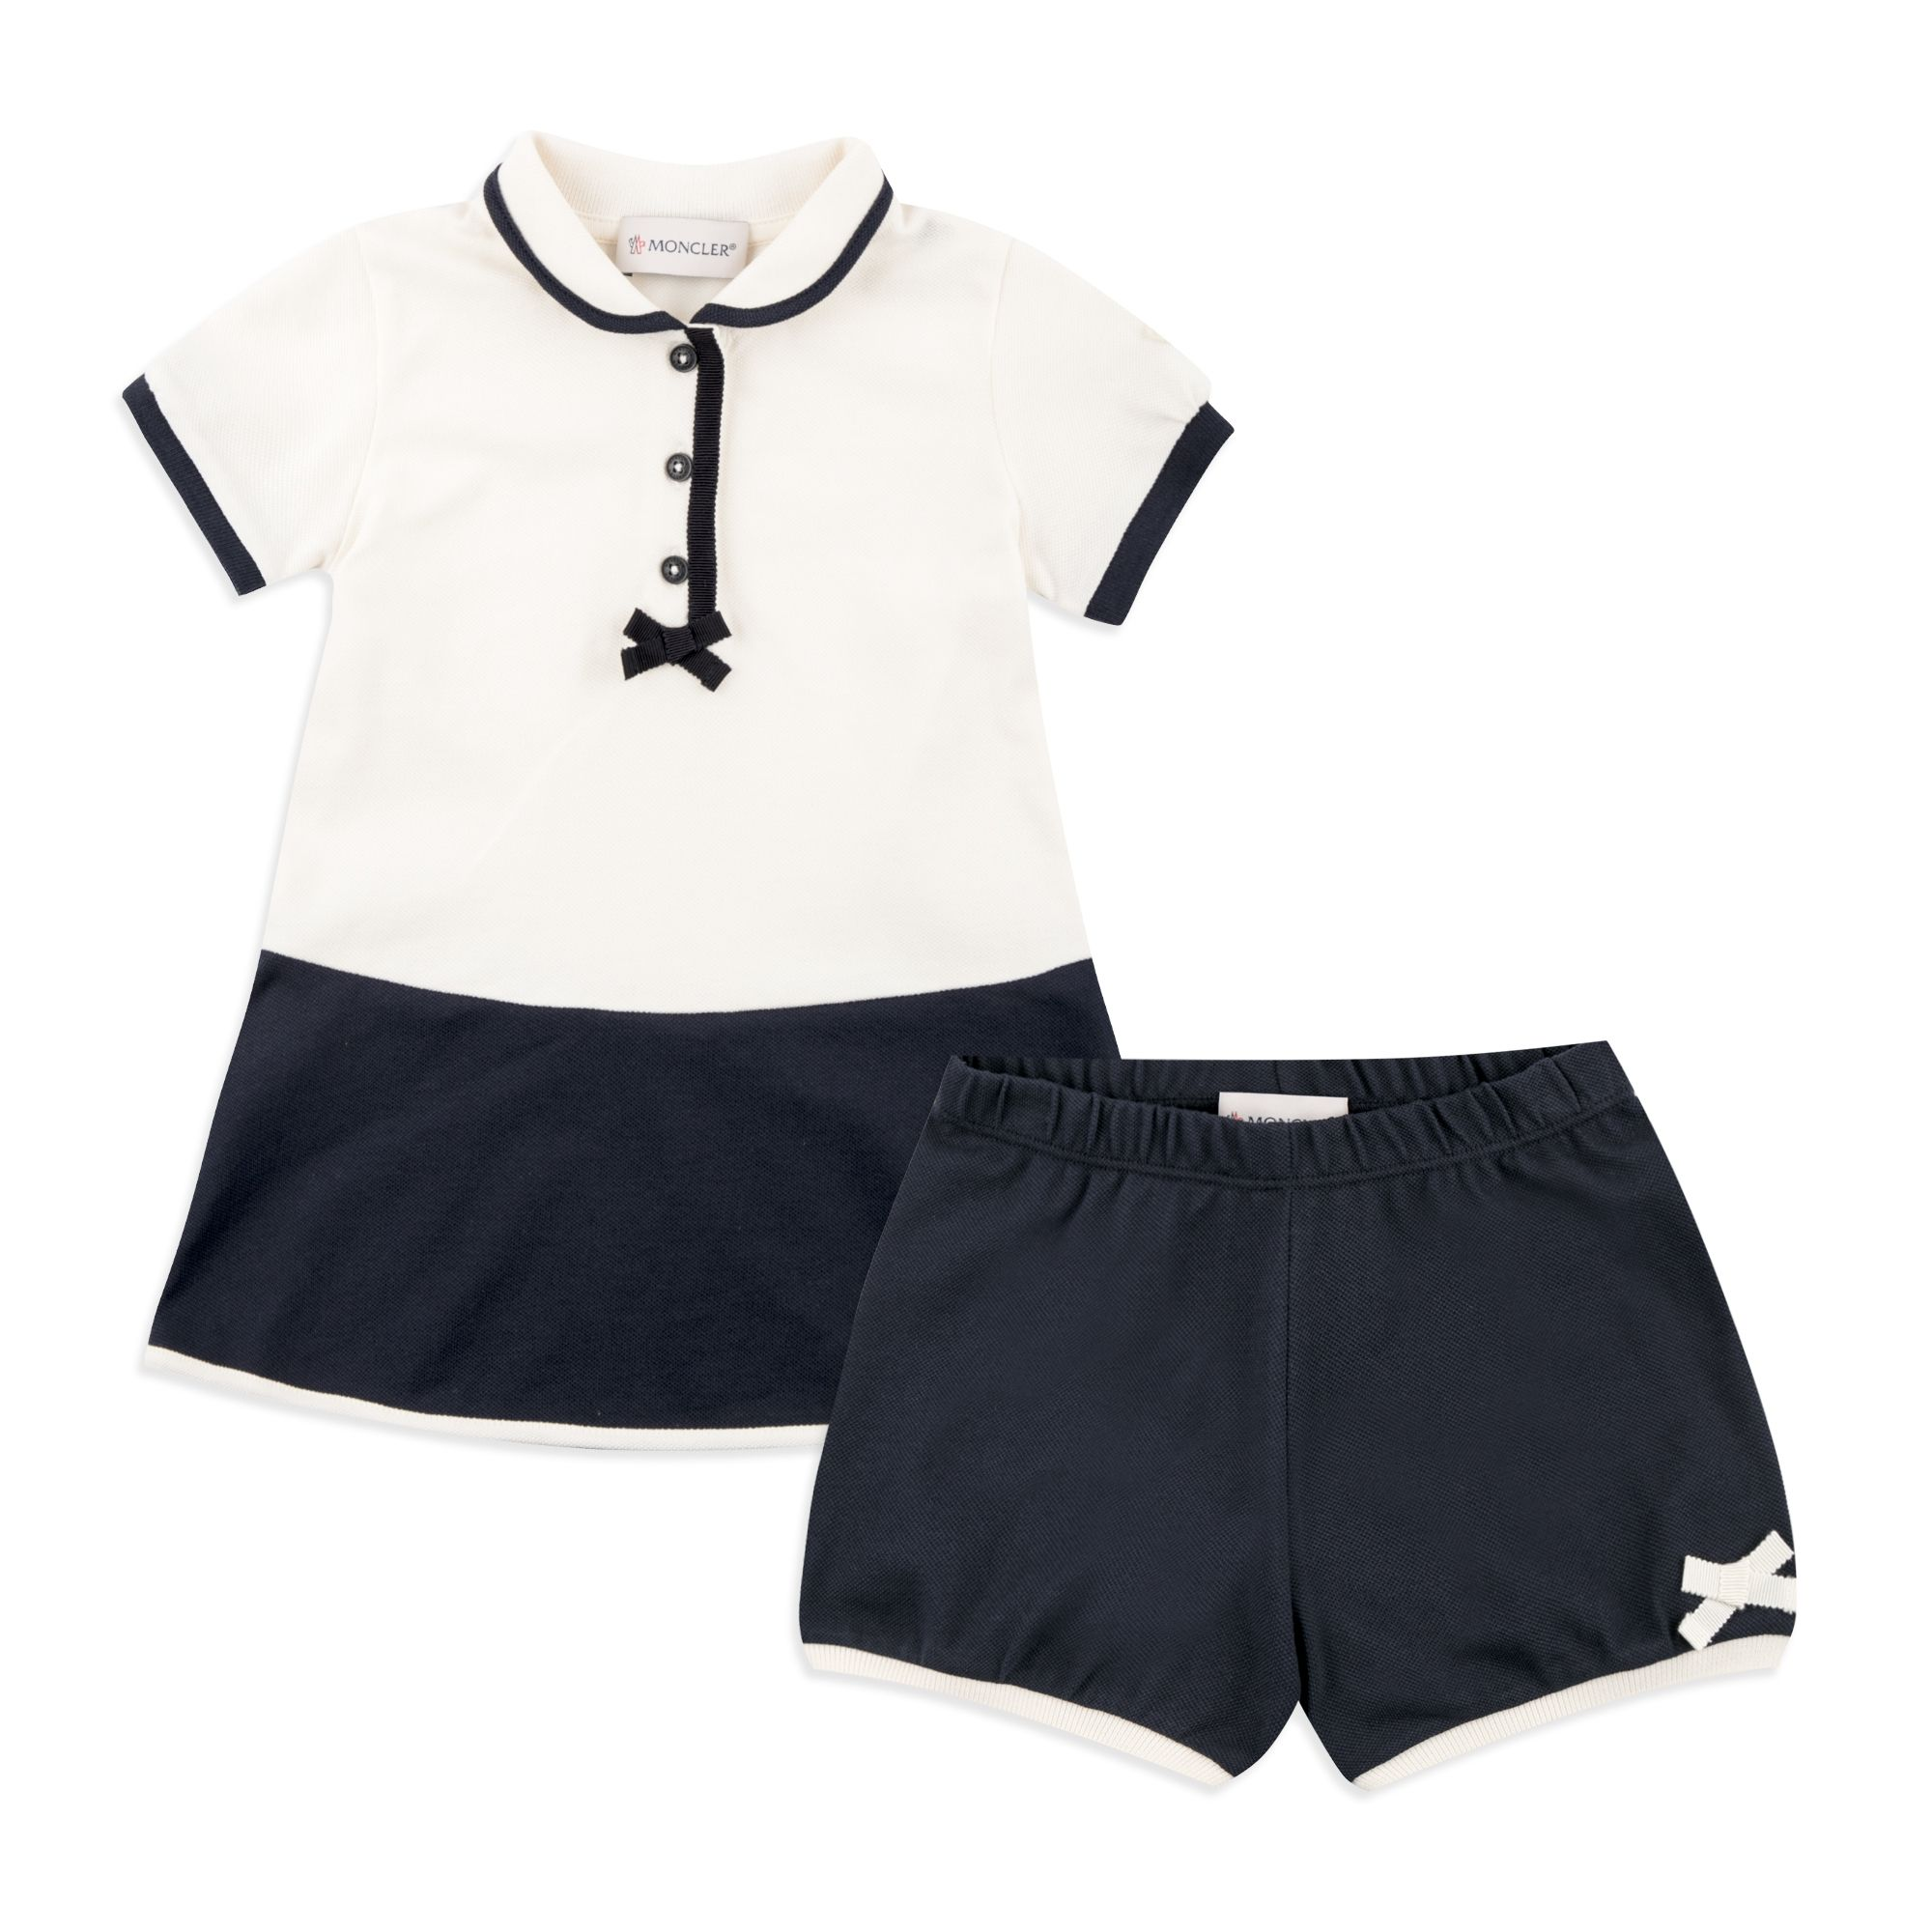 8803b3526008 MONCLER Baby Girls Polo Dress   Shorts Outfit - Cream Navy Baby ...